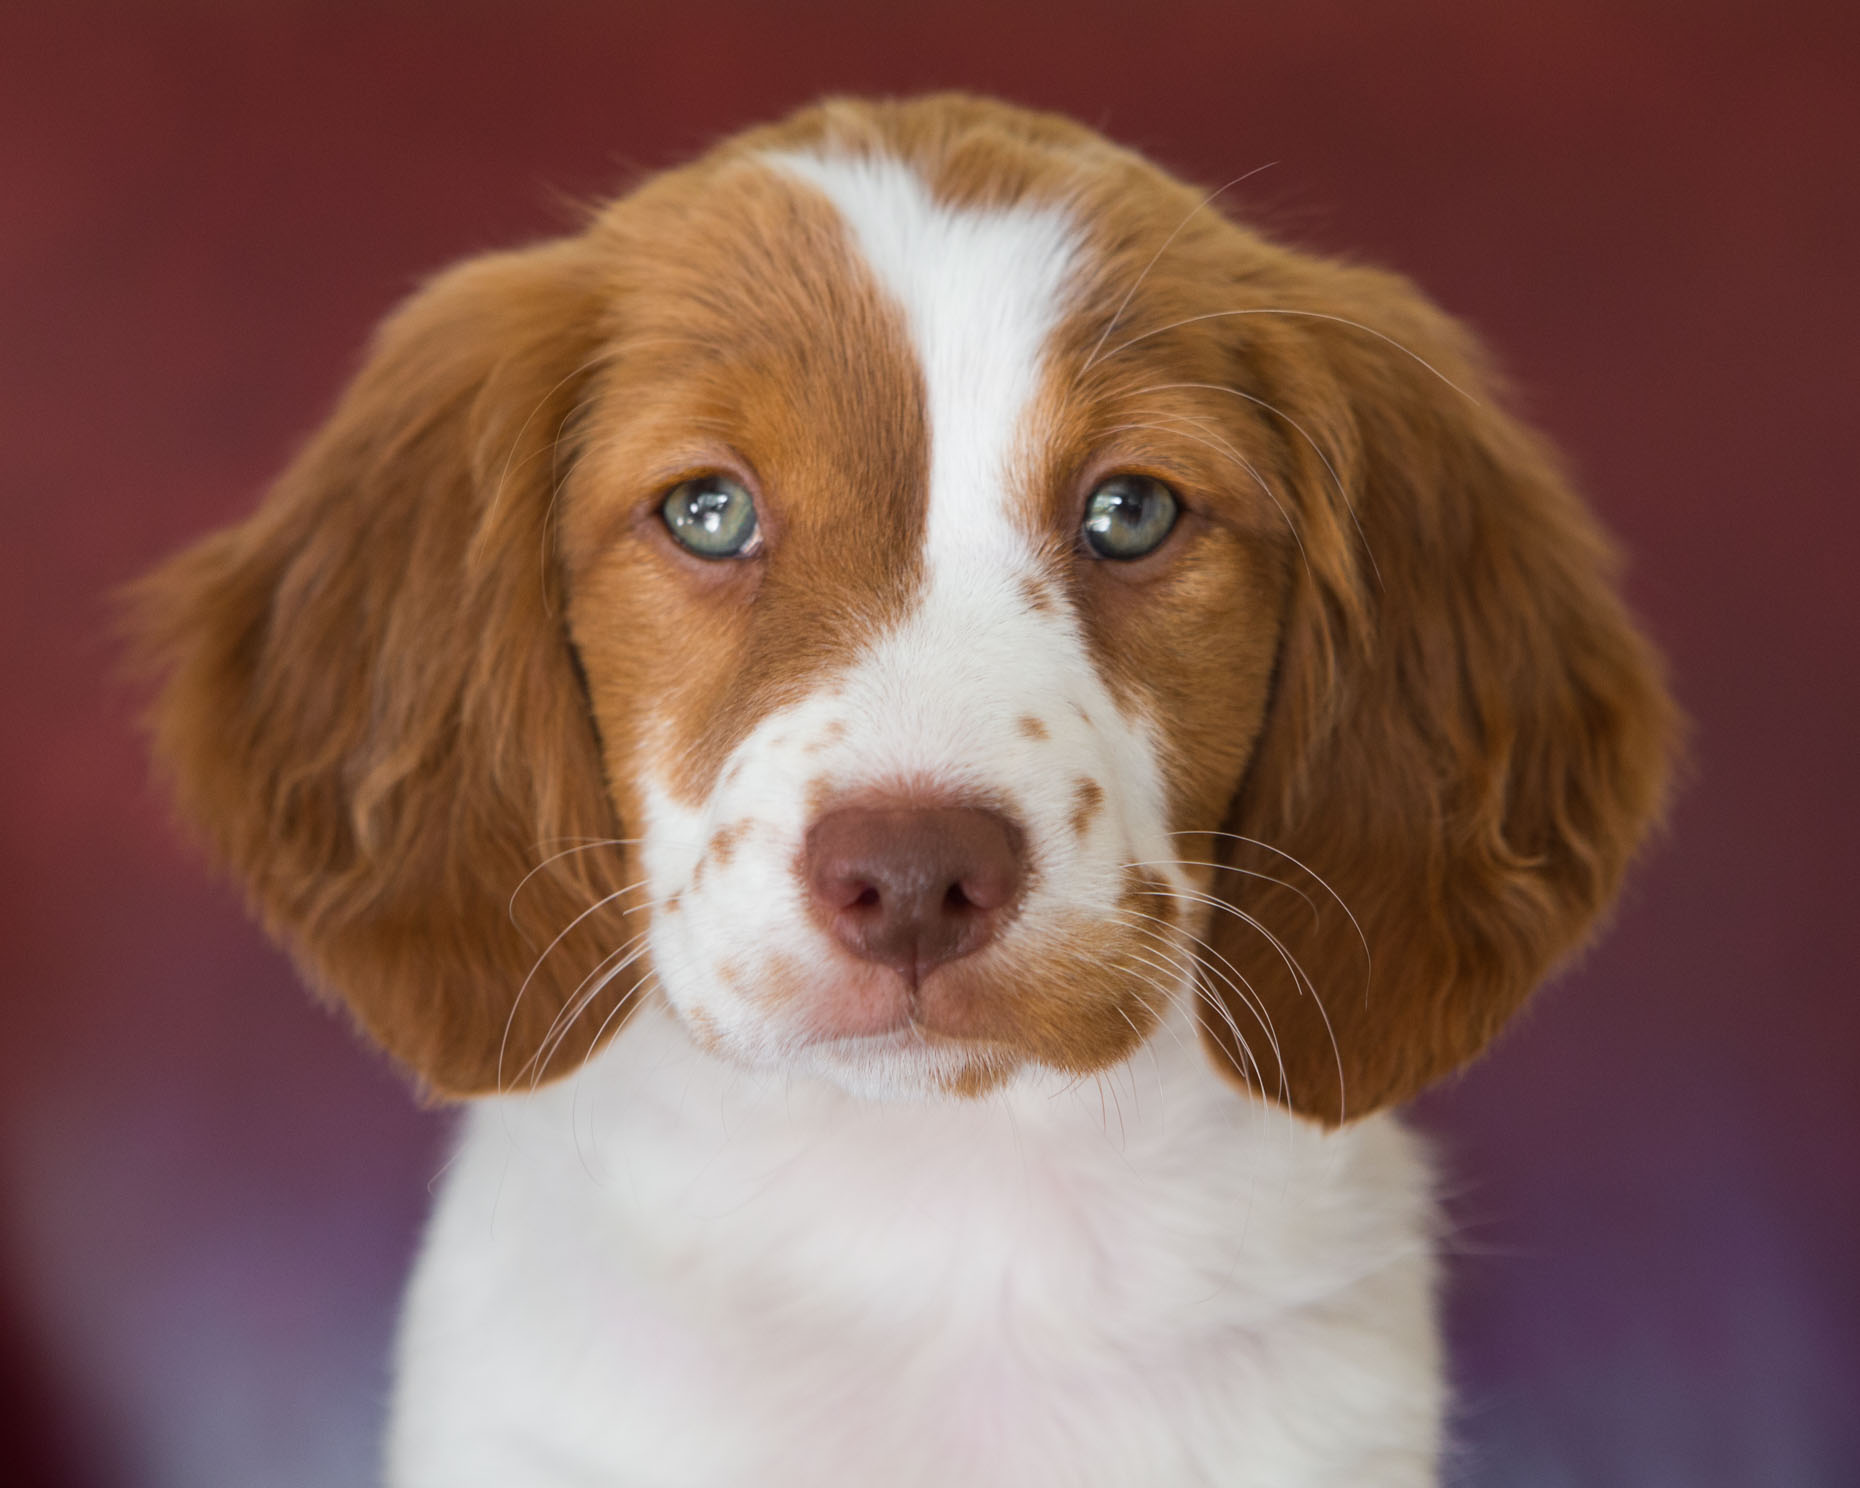 Dog and Pet Photography | Close-up King Charles by Mark Rogers